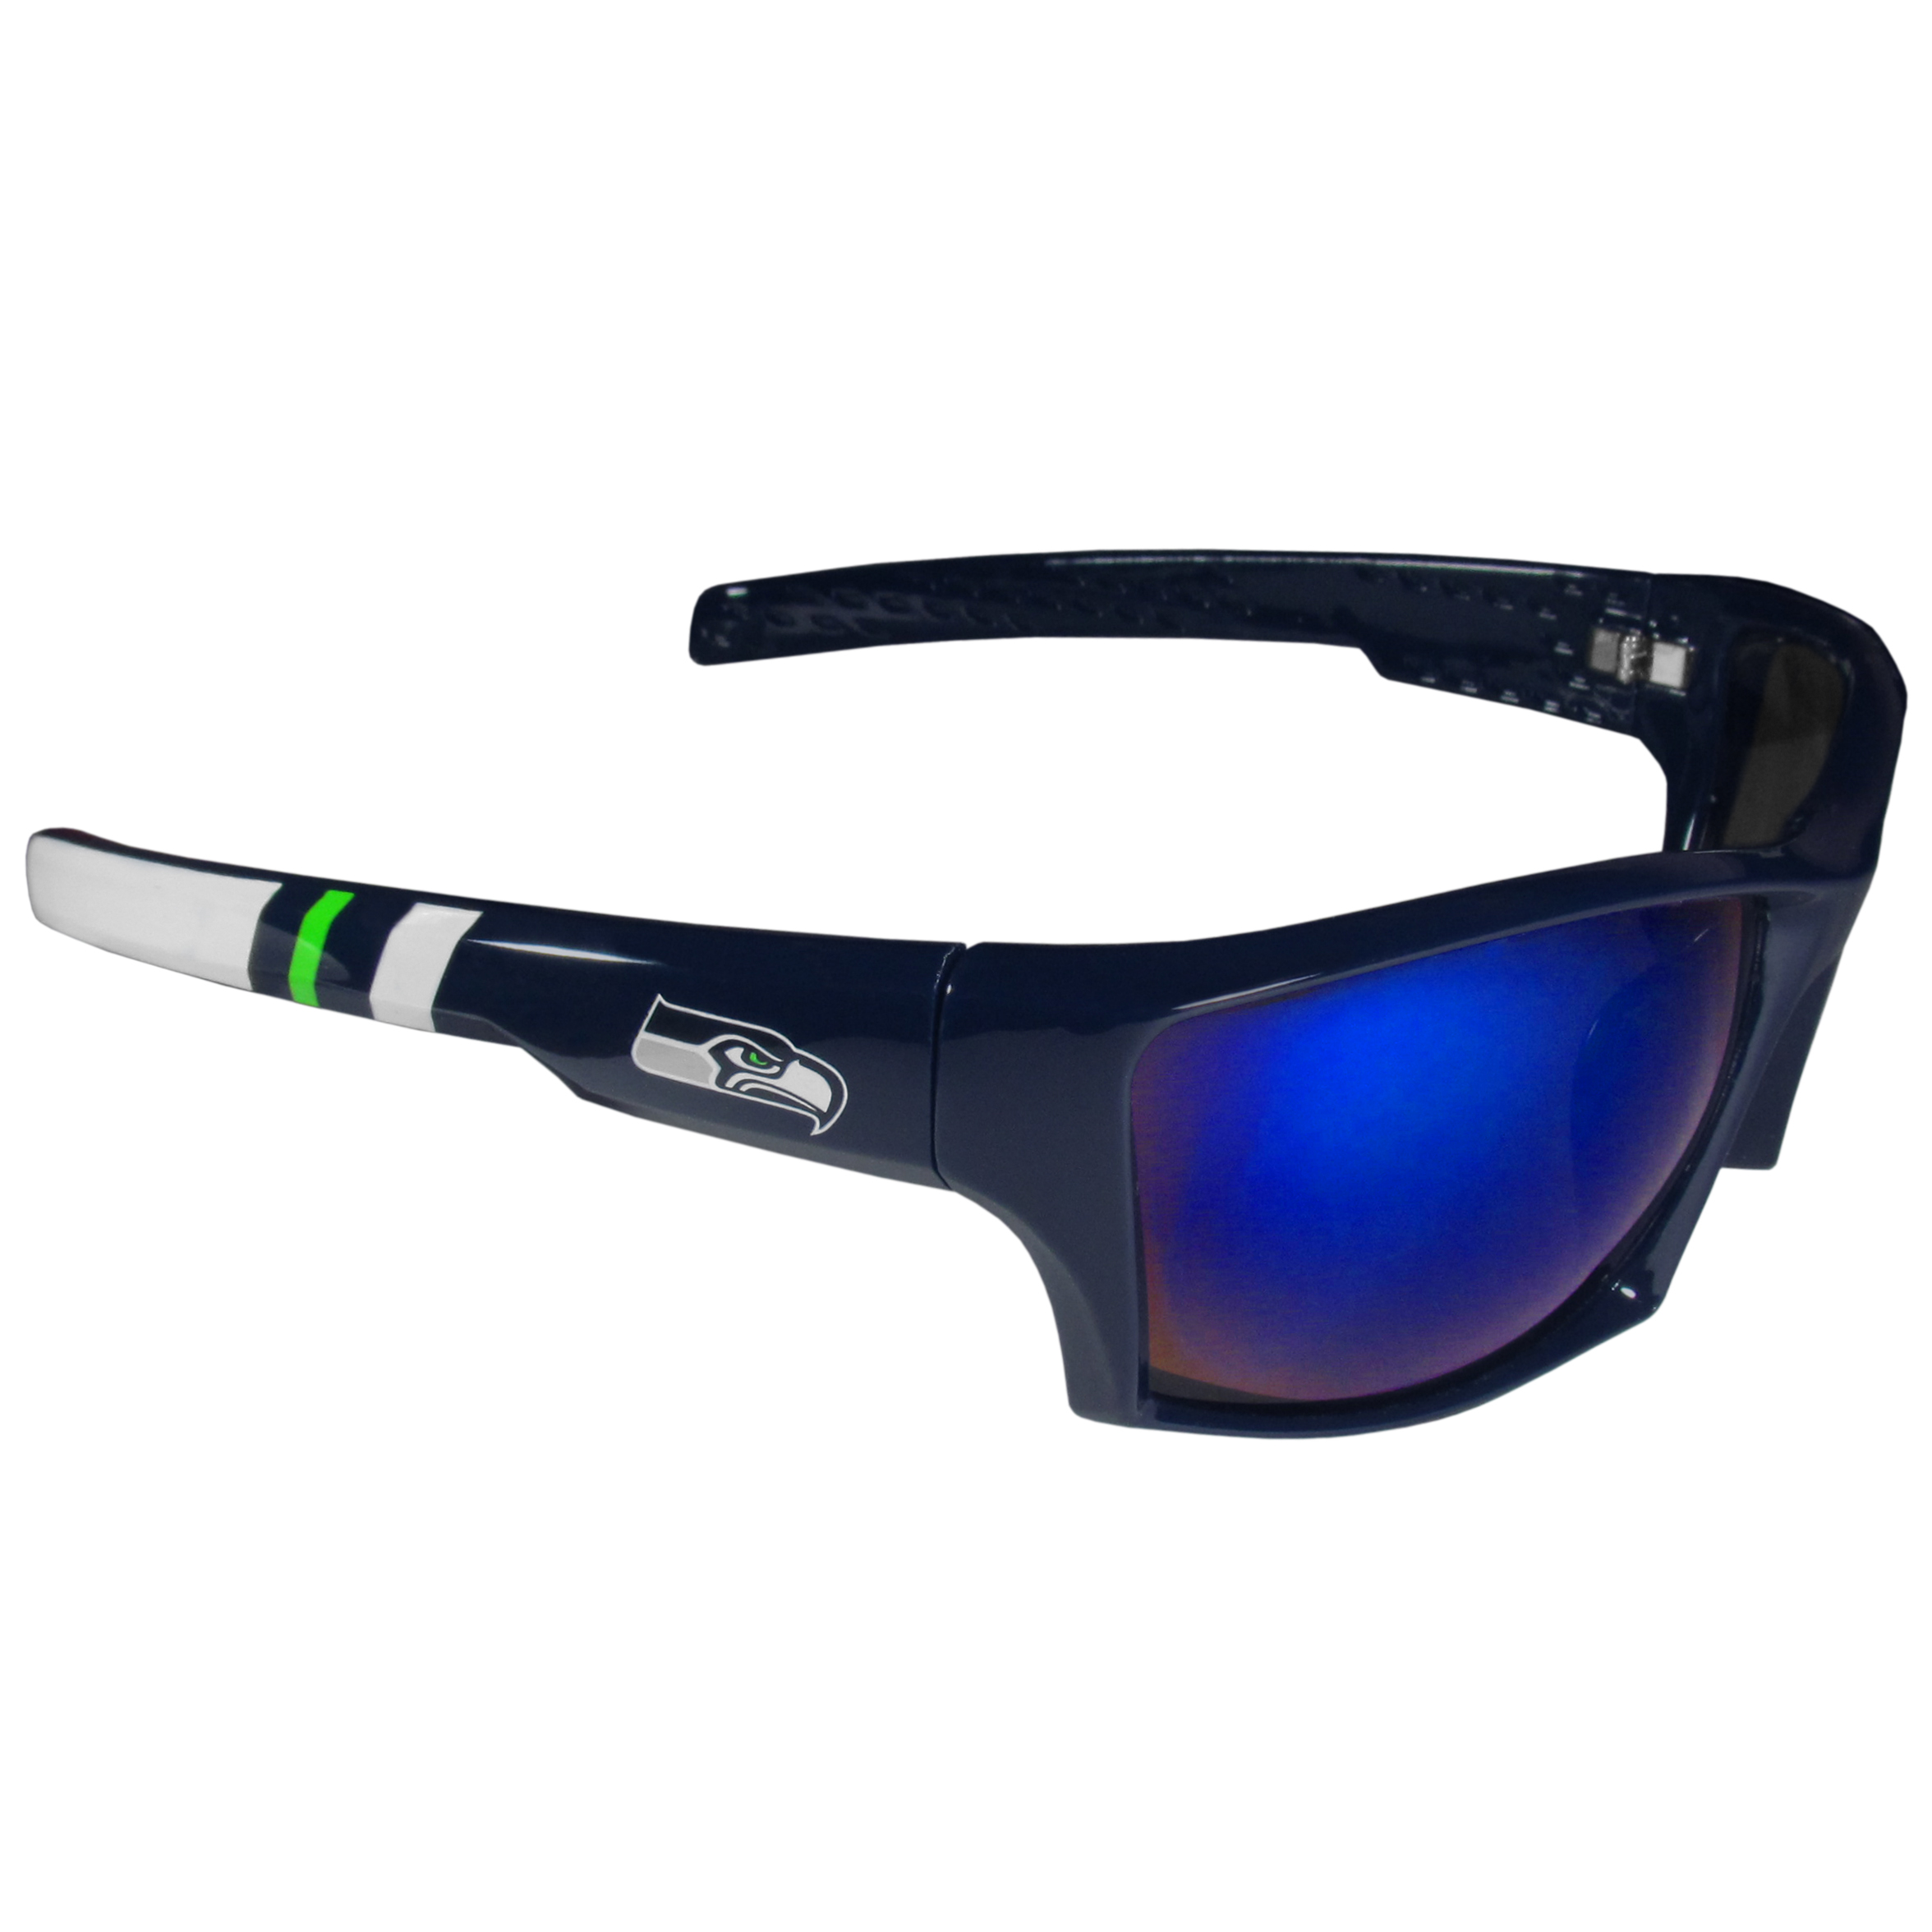 Seattle Seahawks Edge Wrap Sunglasses - Be an icon of edgy style while you're in the stadium cheering your Seattle Seahawks to victory with our polarized wrap sunglasses that feature 100% UVA/UVB rating for maximum UV protection. The light-weight frames are built to last with flex hinges for comfort and durability which make them perfect for driving or just lounging by the pool. The colorful rubber grips on the arms of these fashionable sunglasses make them perfect for someone with an active lifestyle. Whether you are hiking, fishing, boating, running on the beach, golfing or playing your favorite sport these designer frames will set you apart. Our edge wrap sunglasses are true quality eyewear at an affordable price. The wrap style frames come with team colored stripes and team logos so you can show off your die-hard team pride while protecting your eyes from those bright sun rays.